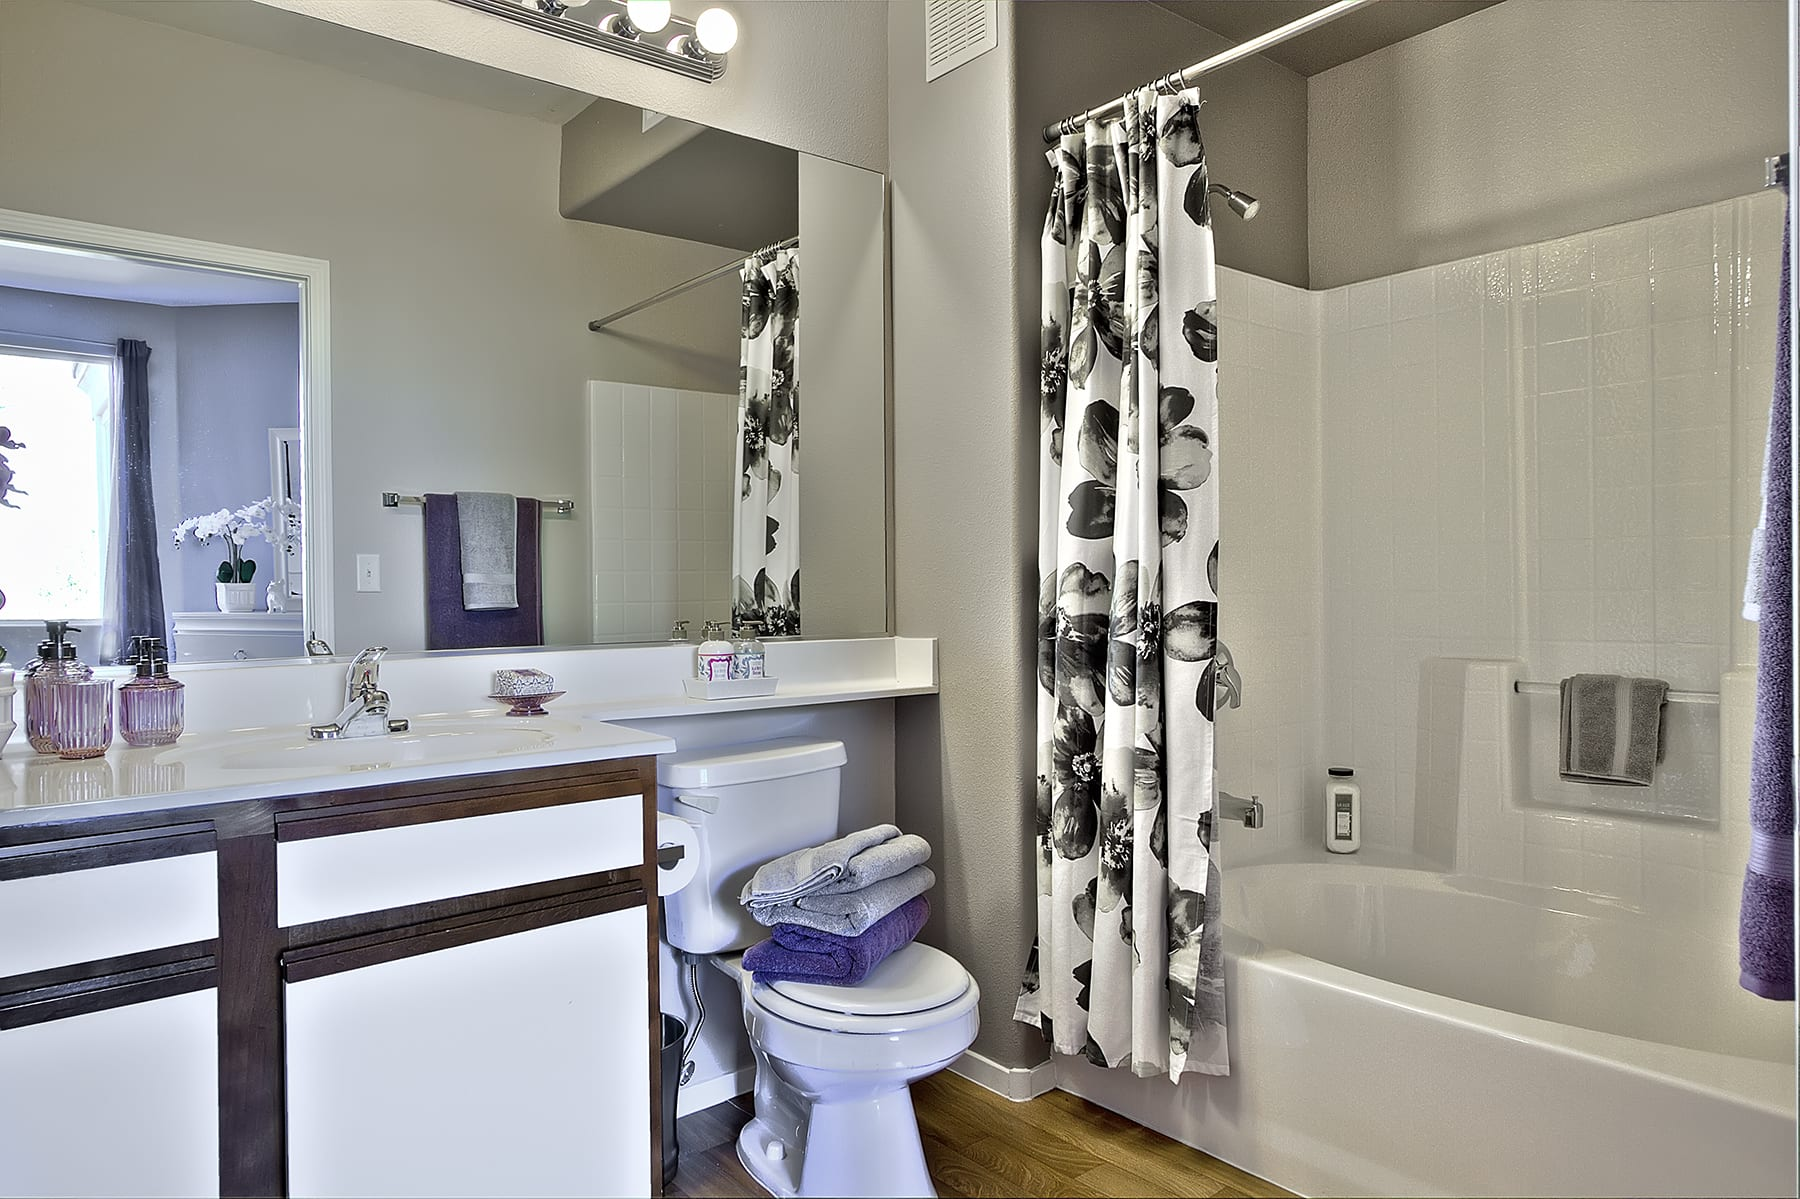 A bathroom with rich wood-like floors and luxurious appointments.